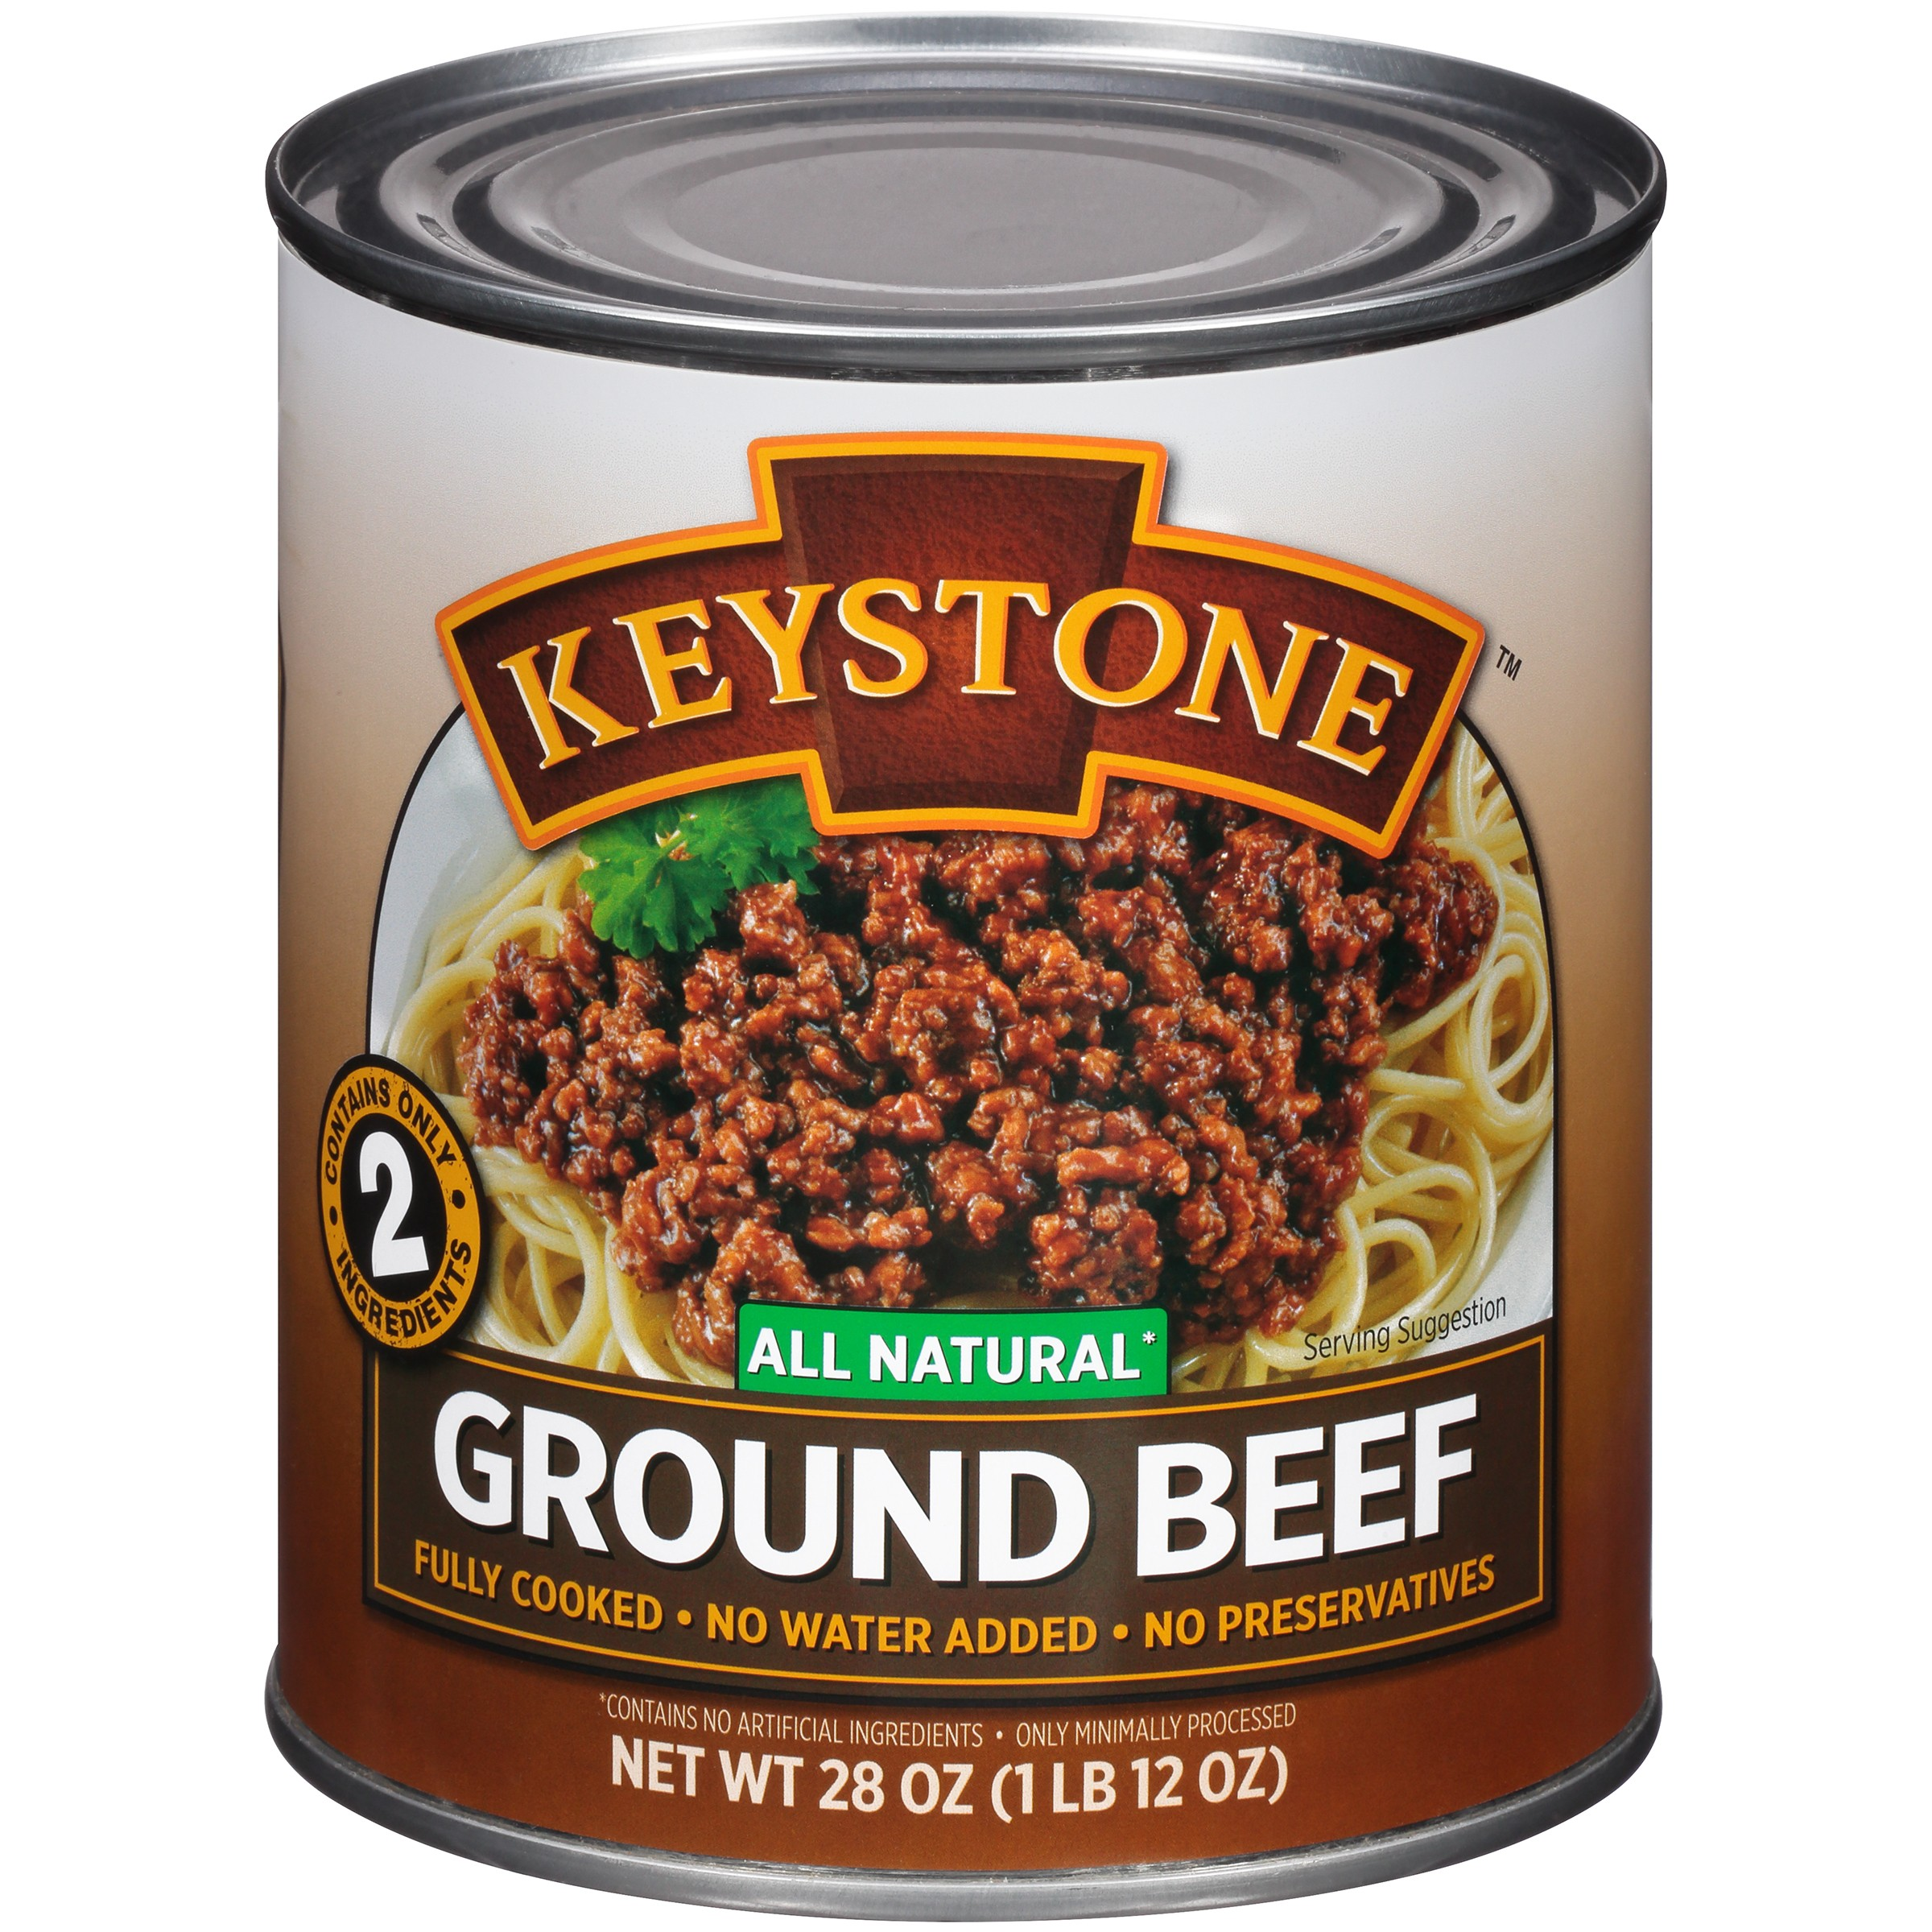 Keystone Ground Beef, 28 oz